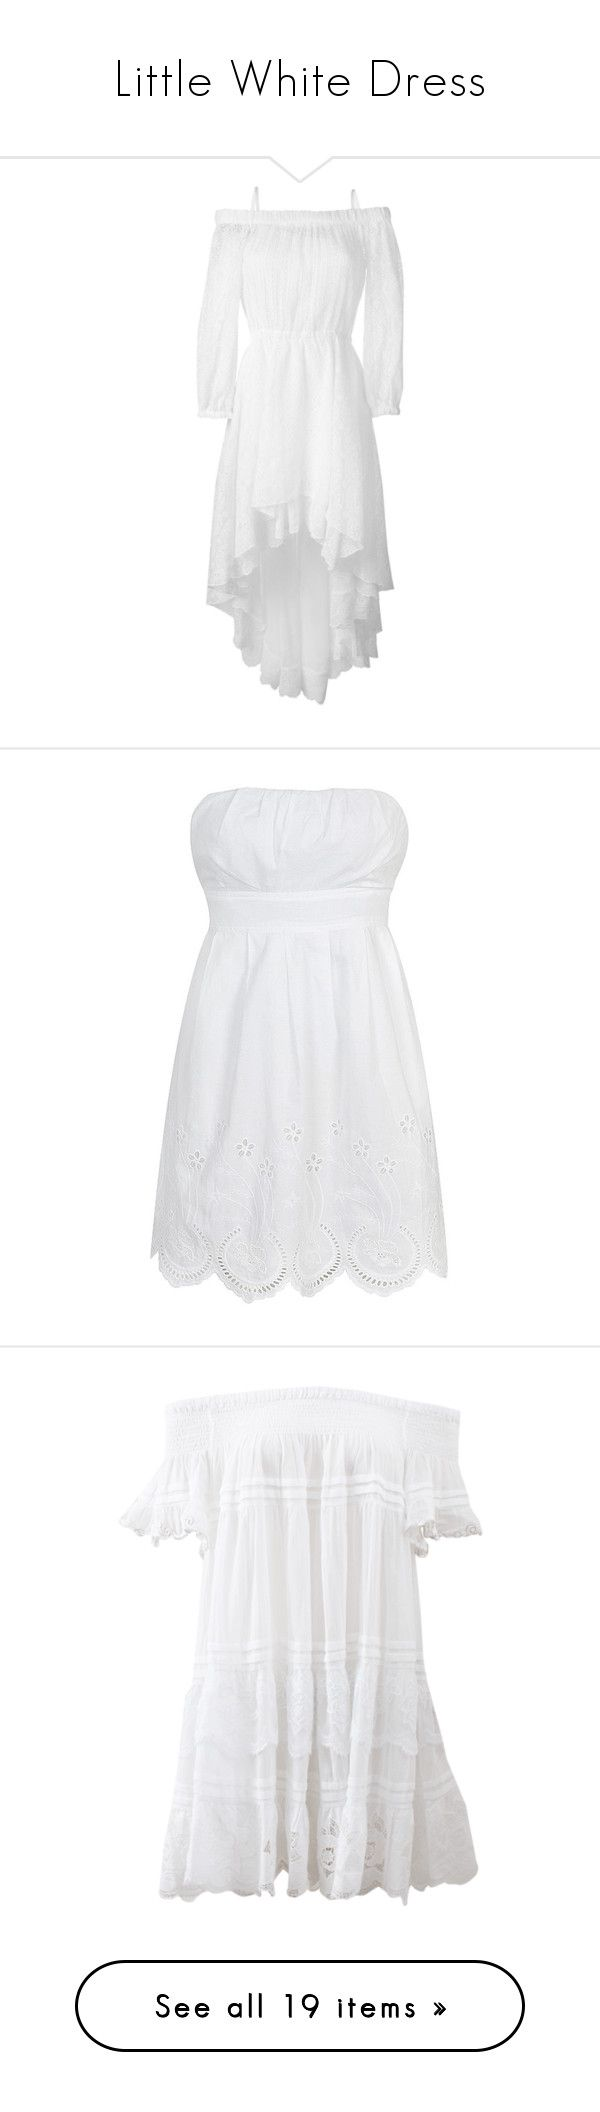 """""""Little White Dress"""" by whims-and-craze ❤ liked on Polyvore featuring dresses, white, mullet dress, white dress, white off the shoulder dress, off the shoulder lace dress, white off shoulder dress, vestidos, tops and vestiti"""